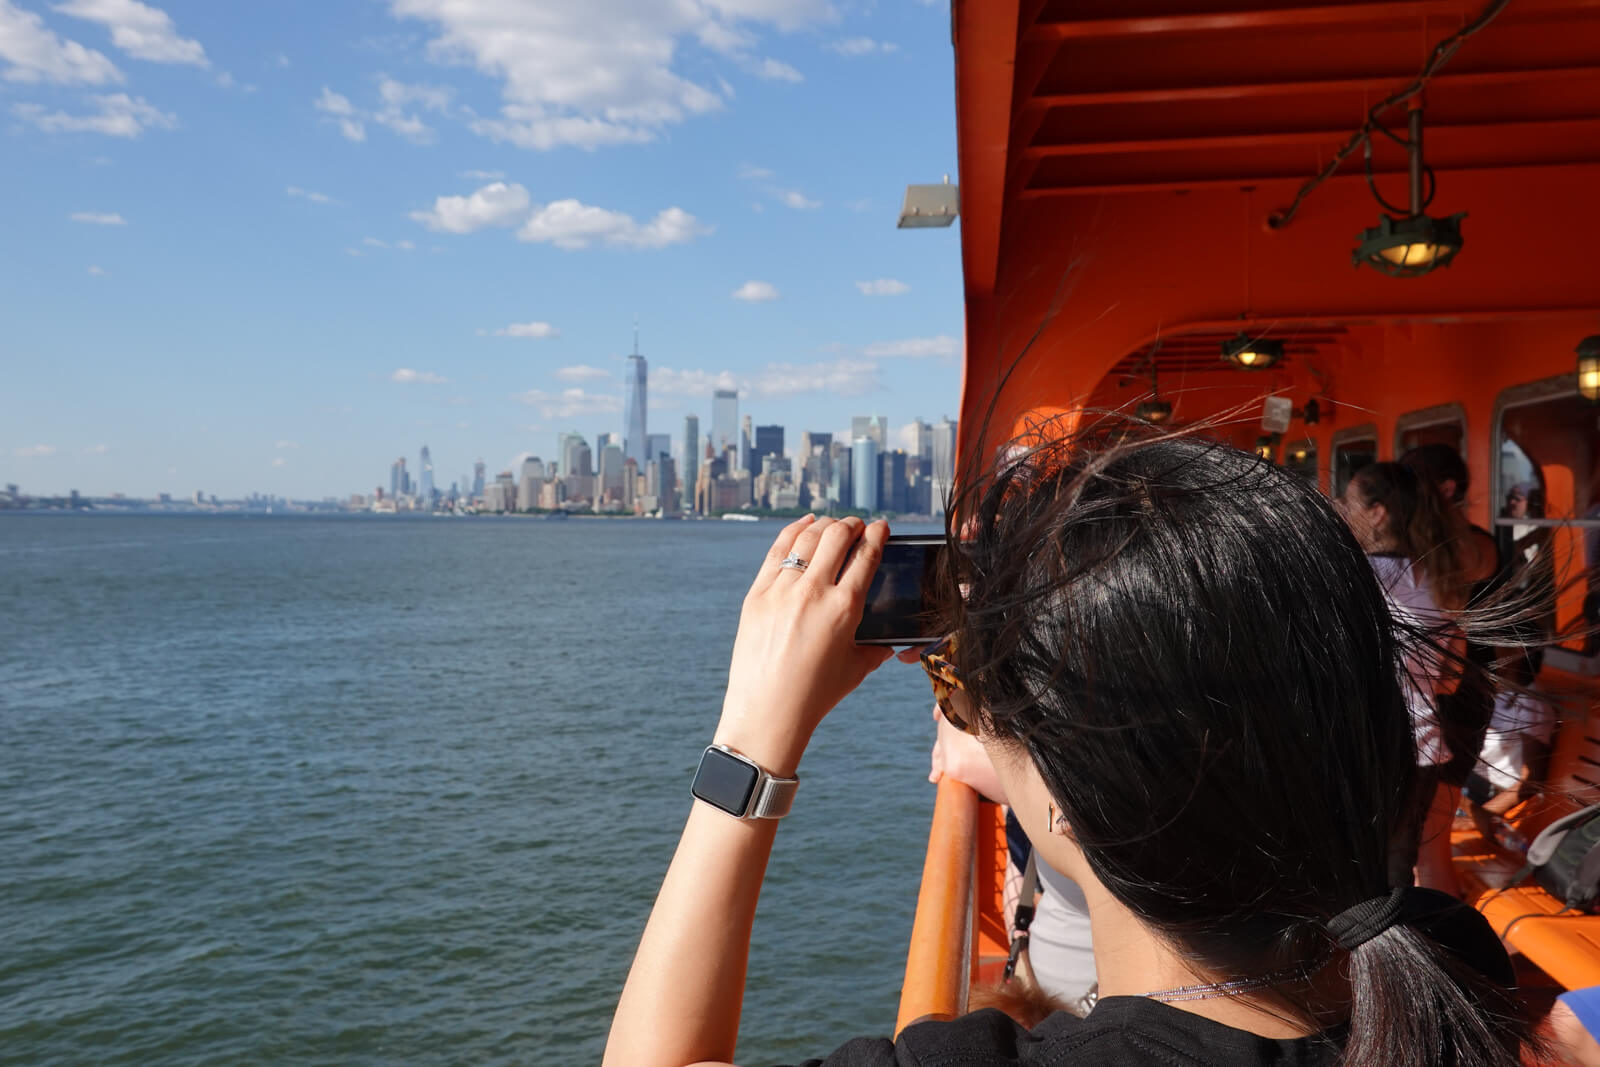 The back of a woman's head as she takes a photo with her smartphone from a ferry. In the distance is a city with high-rise buildings